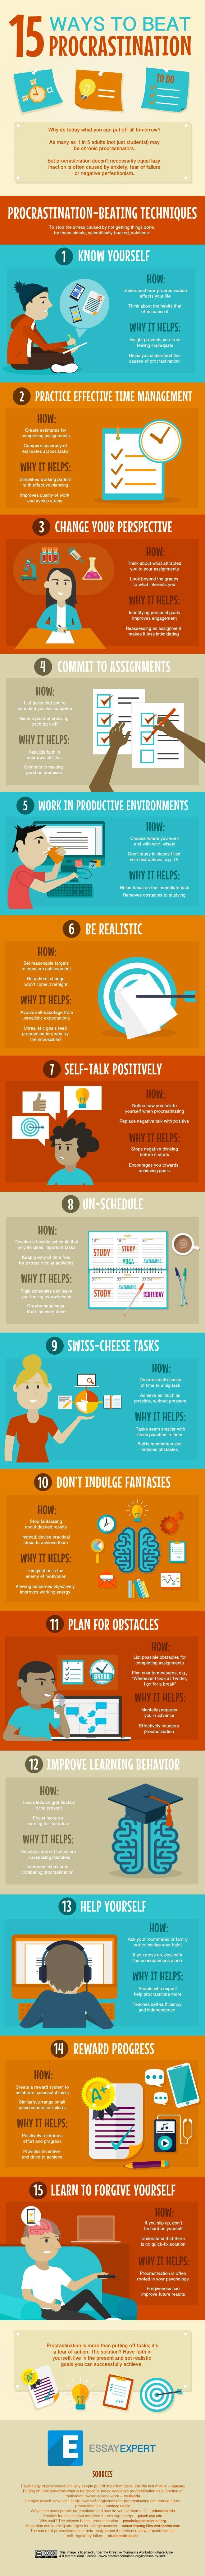 15 Ways to Overcome Procrastination and Get Stuff Done (Infographic) - Assumes you want to not procrastinate, anyway.